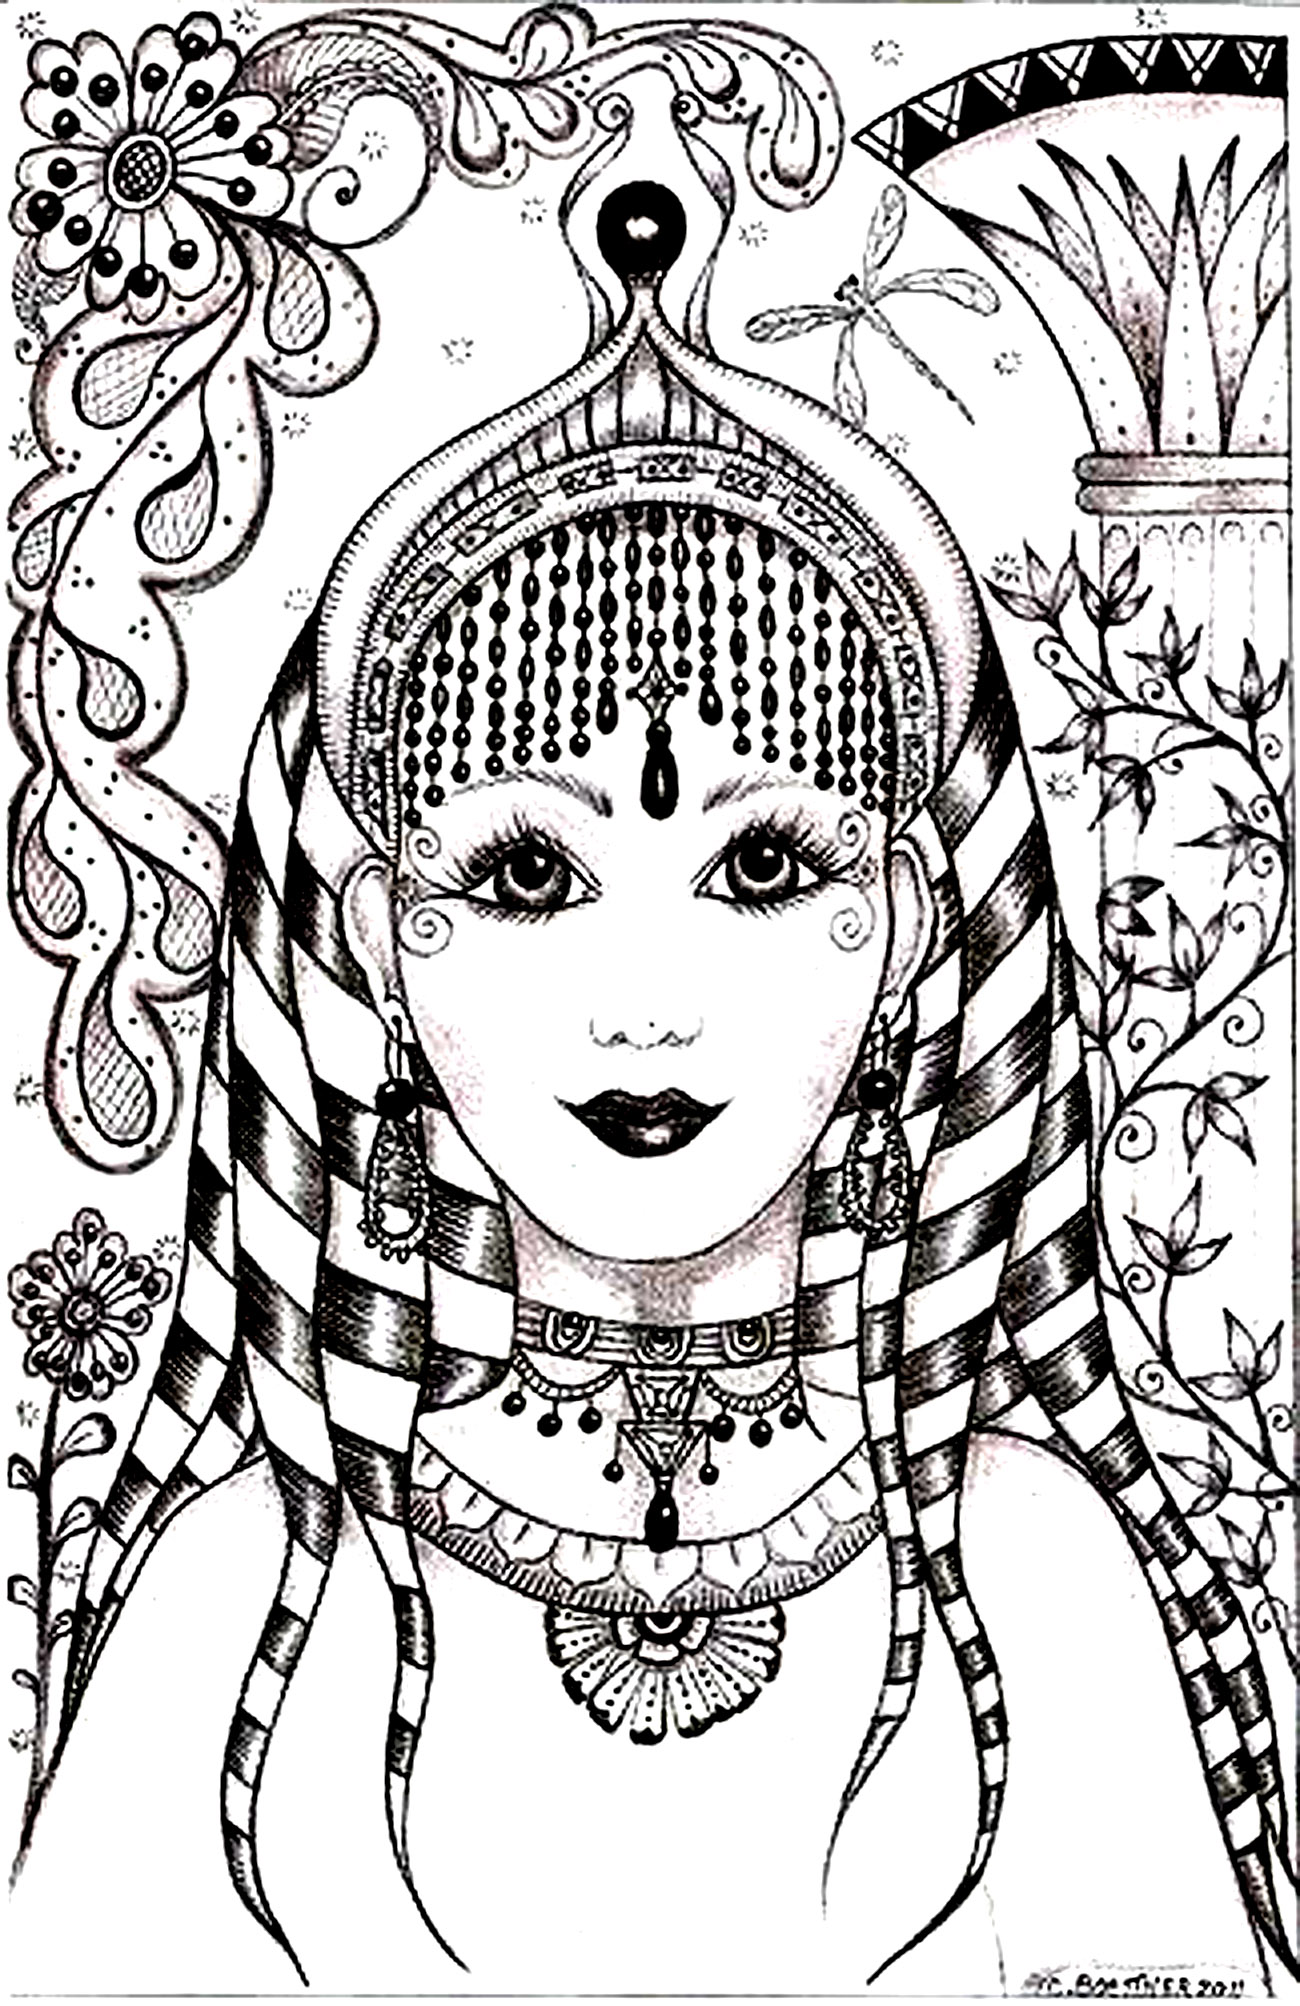 Coloring pages woman - Woman Face India Inspiration Image With Face Woman From The Gallery